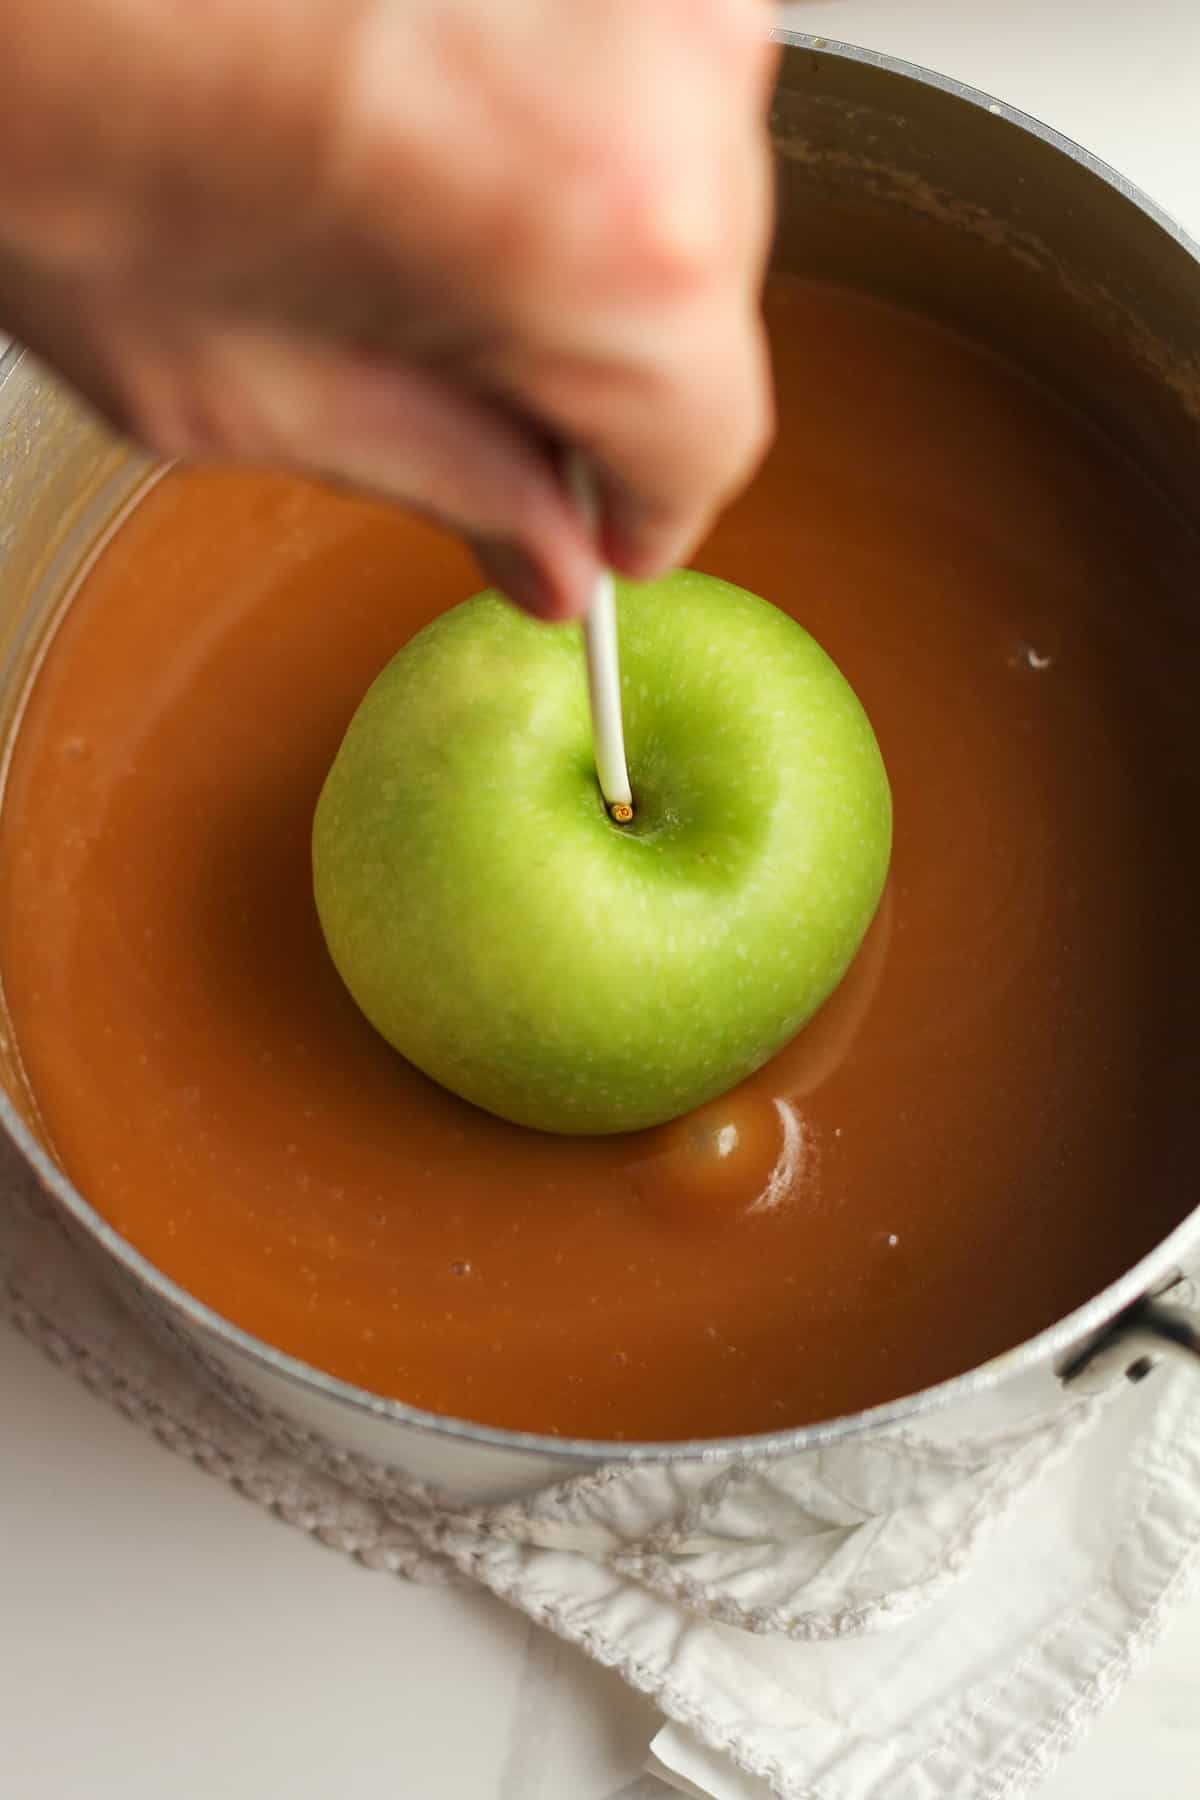 Overhead shot of the apple dipped in pan of caramel.